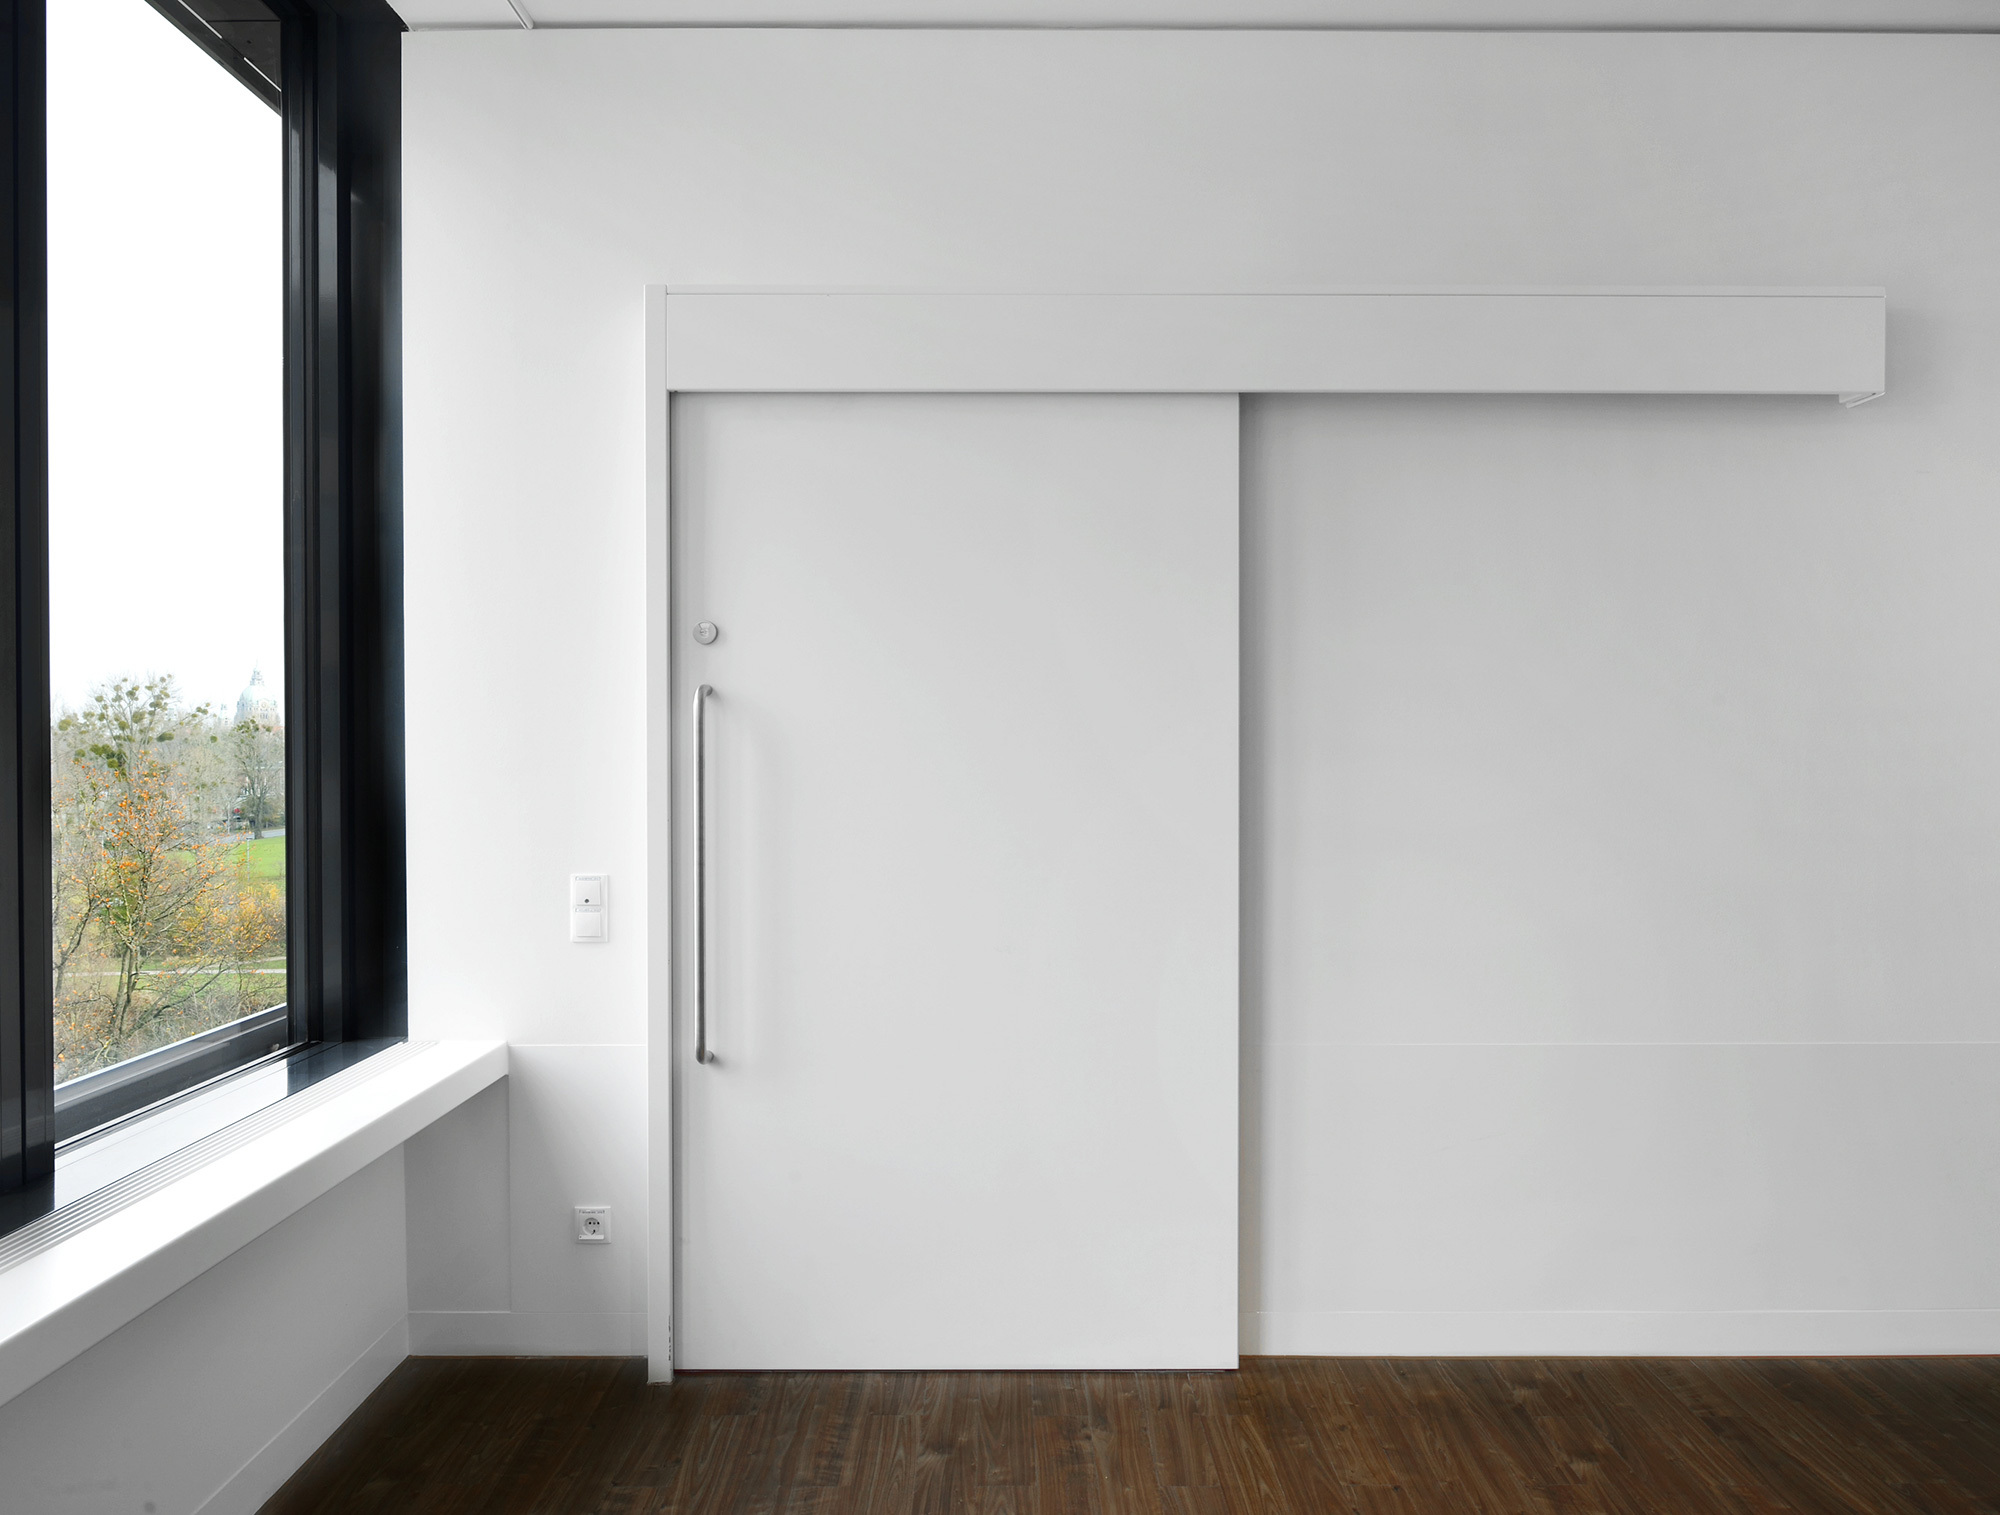 Soundproofing sliding door T0-1 by Lindner Group | STYLEPARK